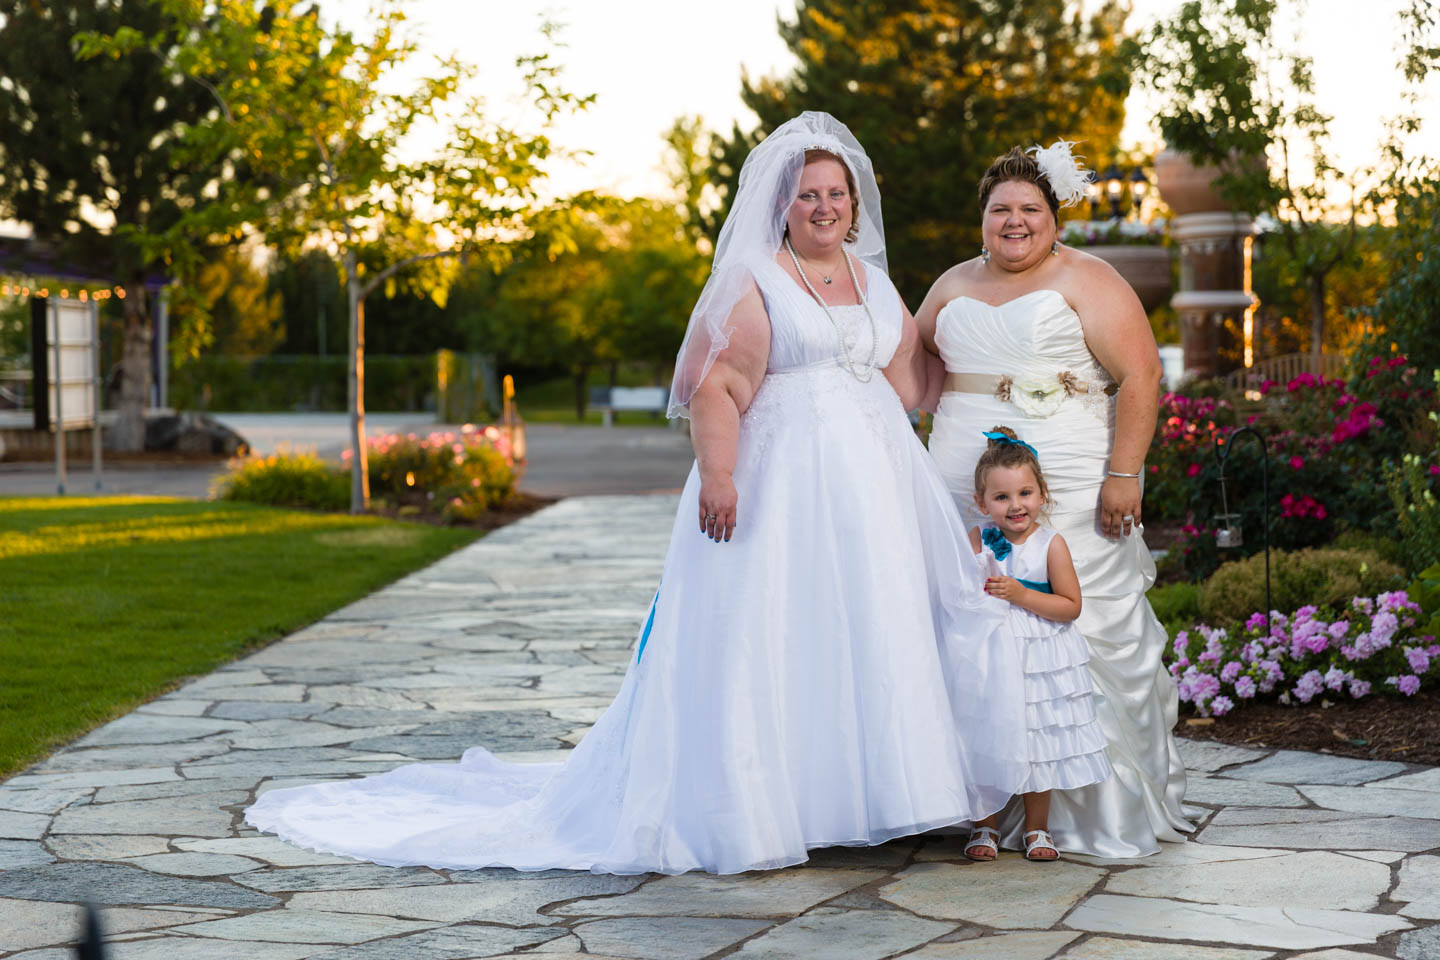 Brides with the flower girl